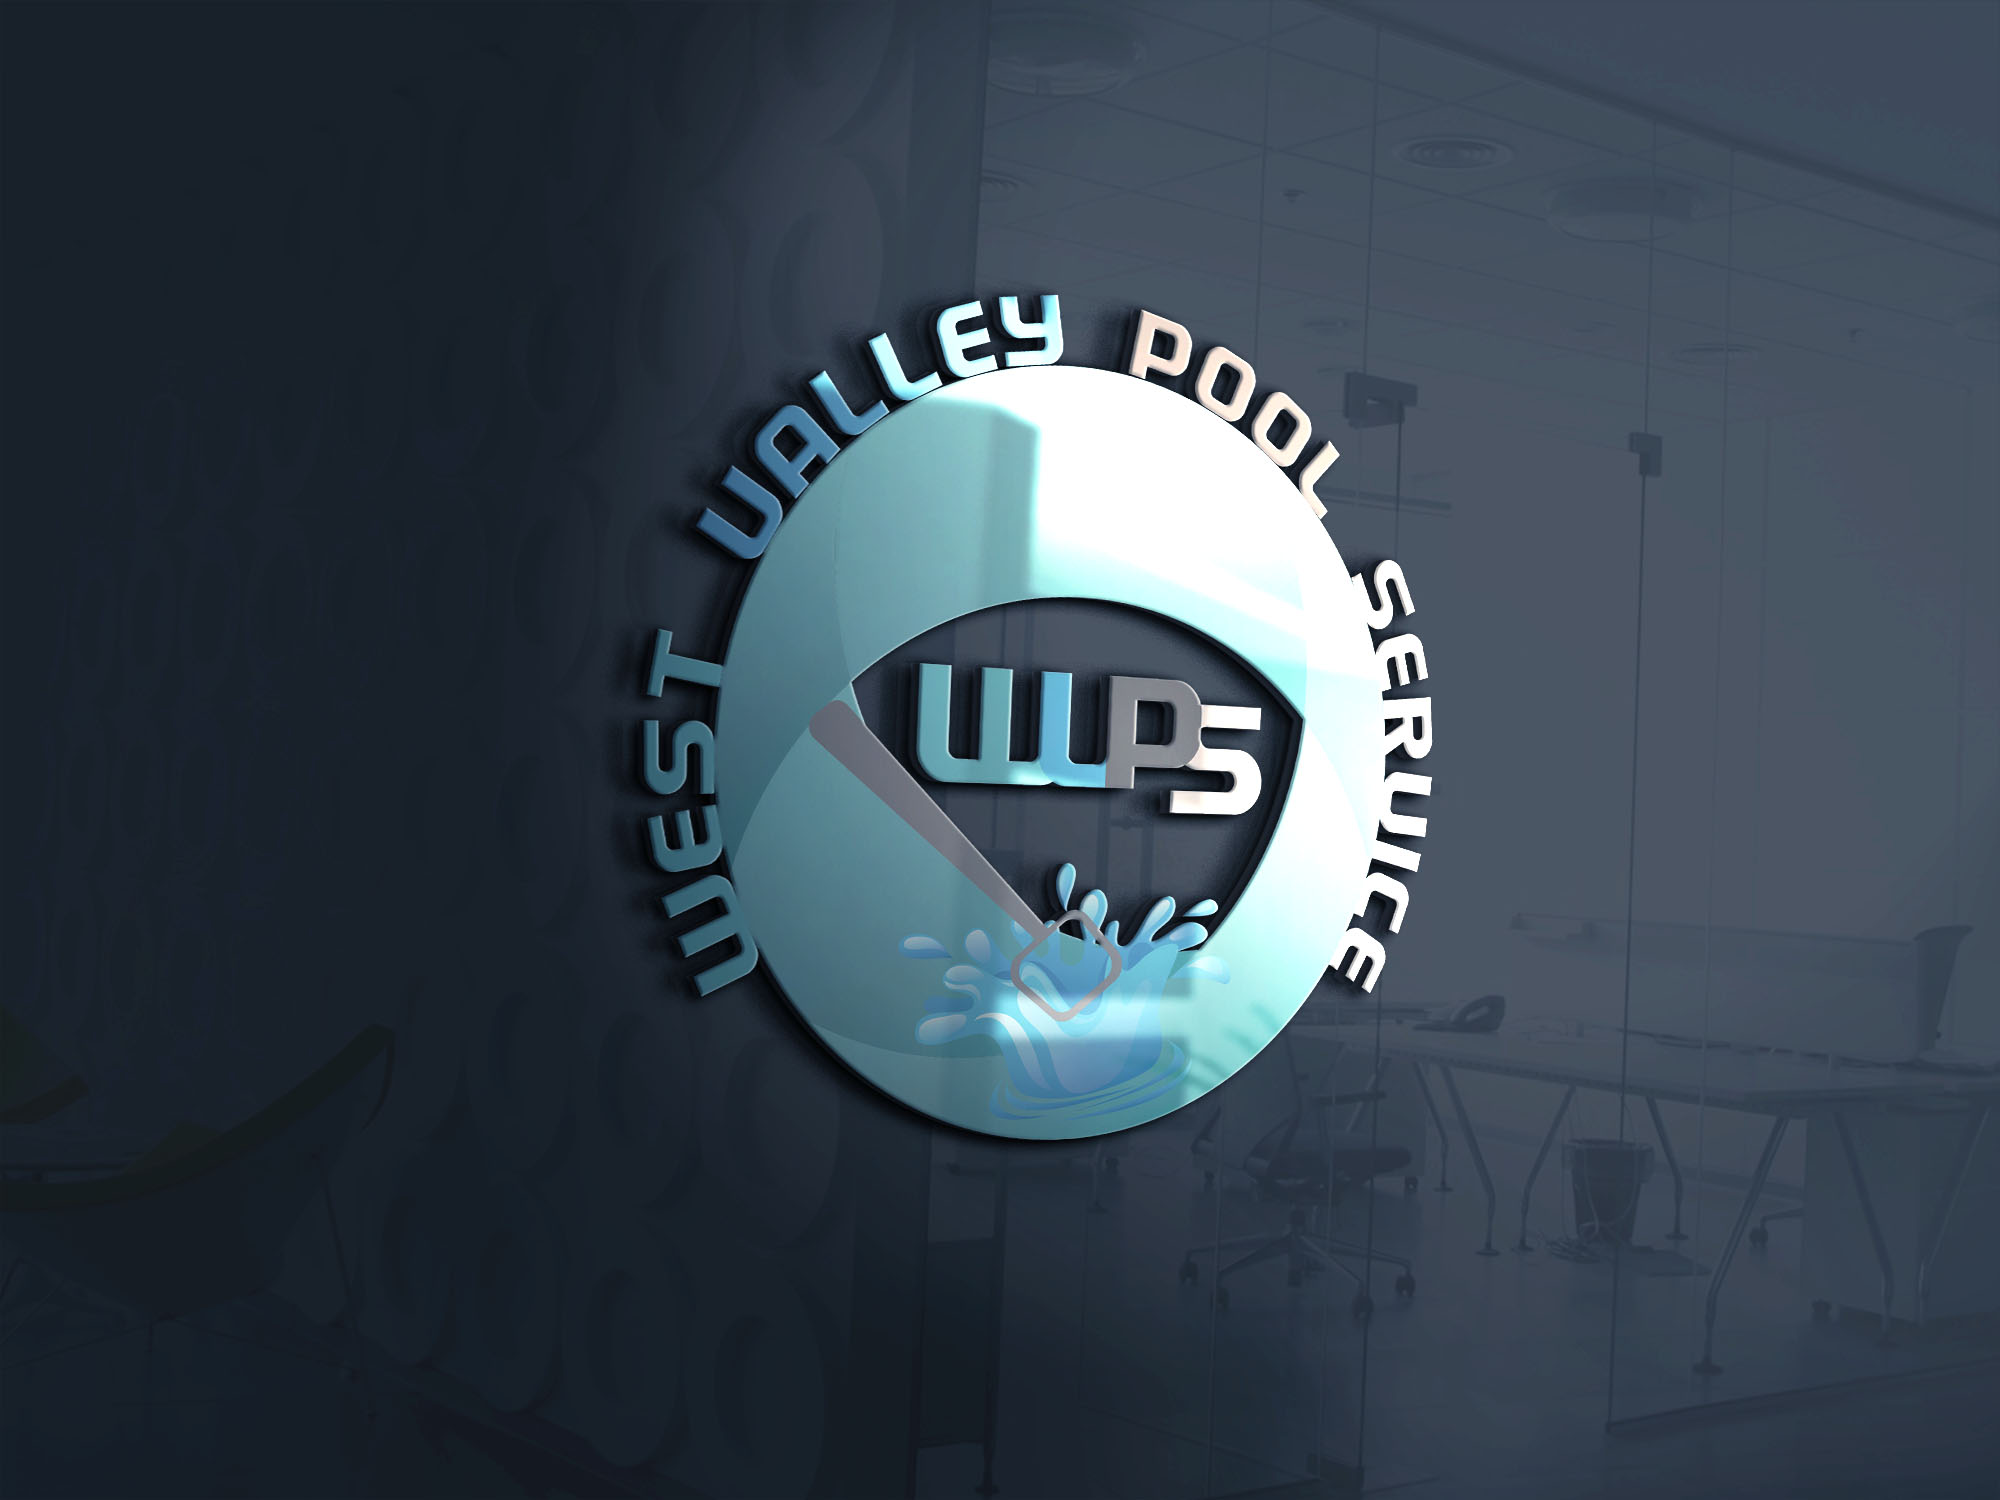 Logo Design by Umair ahmed Iqbal - Entry No. 86 in the Logo Design Contest Clever Logo Design for West Valley Pool Service.